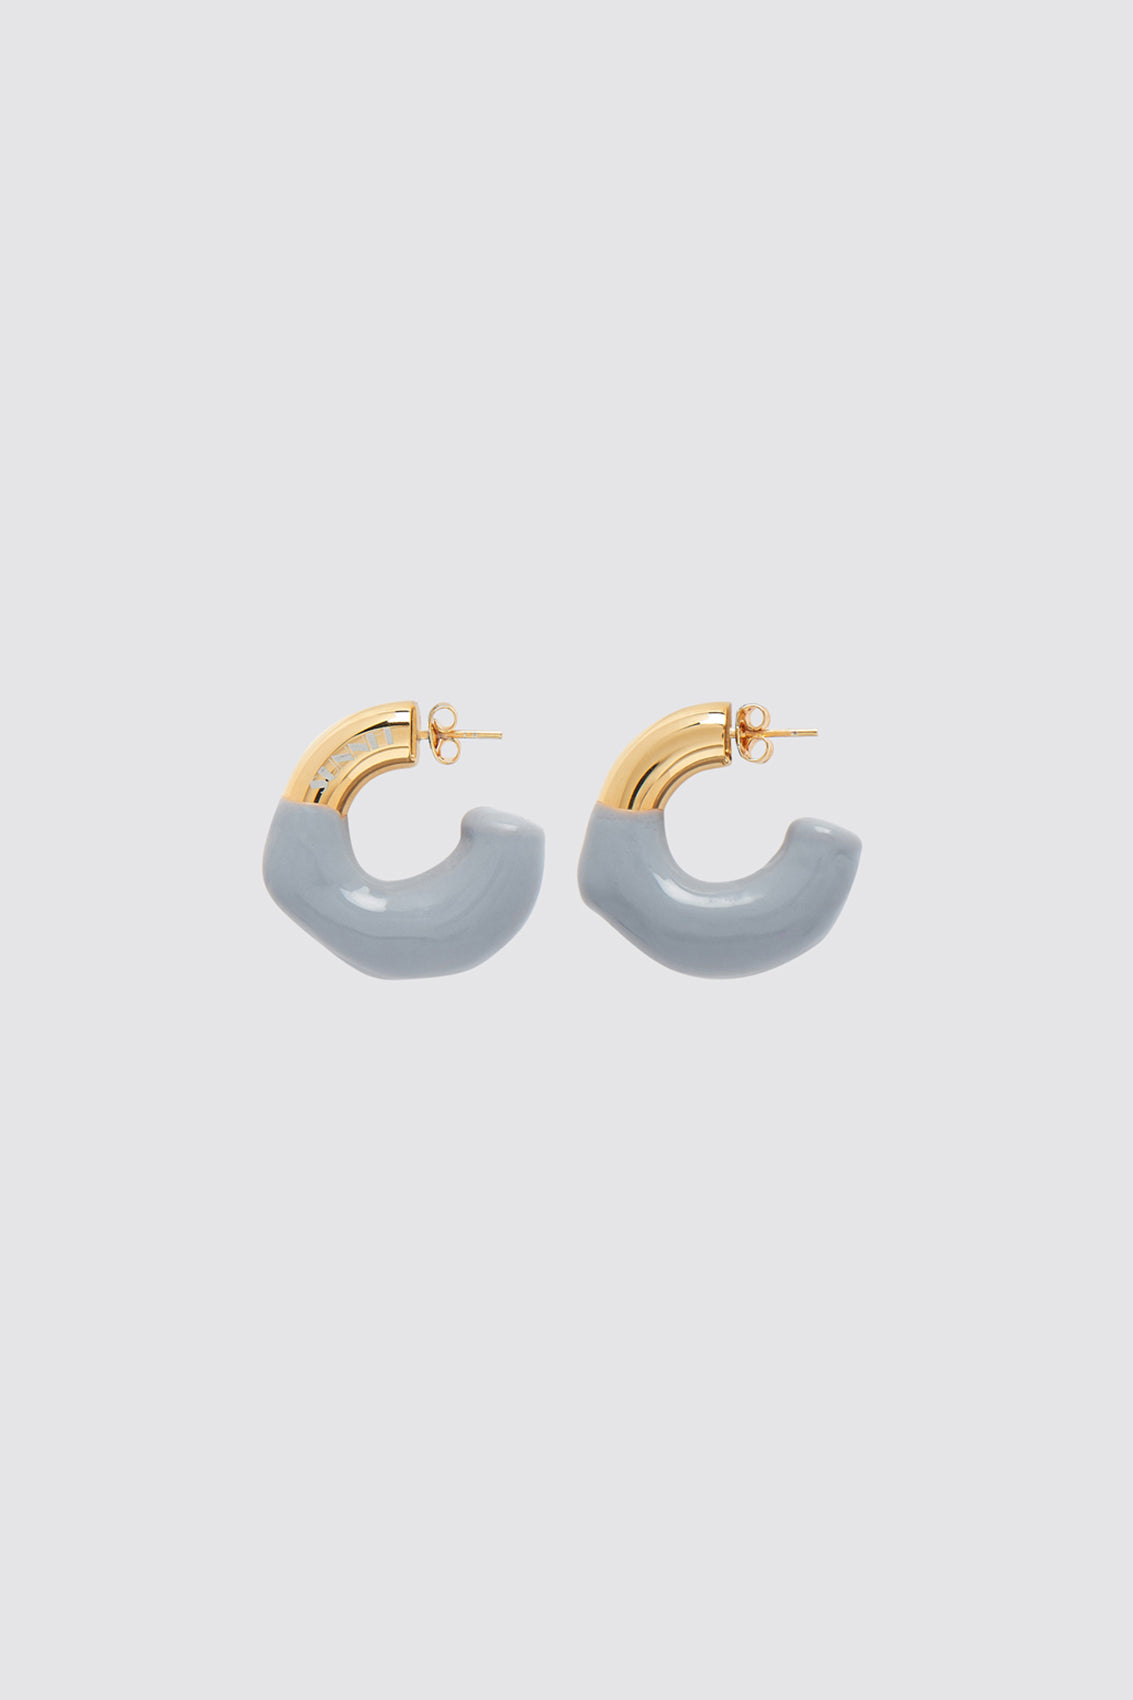 GREY RUBBERIZED SMALL GOLD EARRINGS